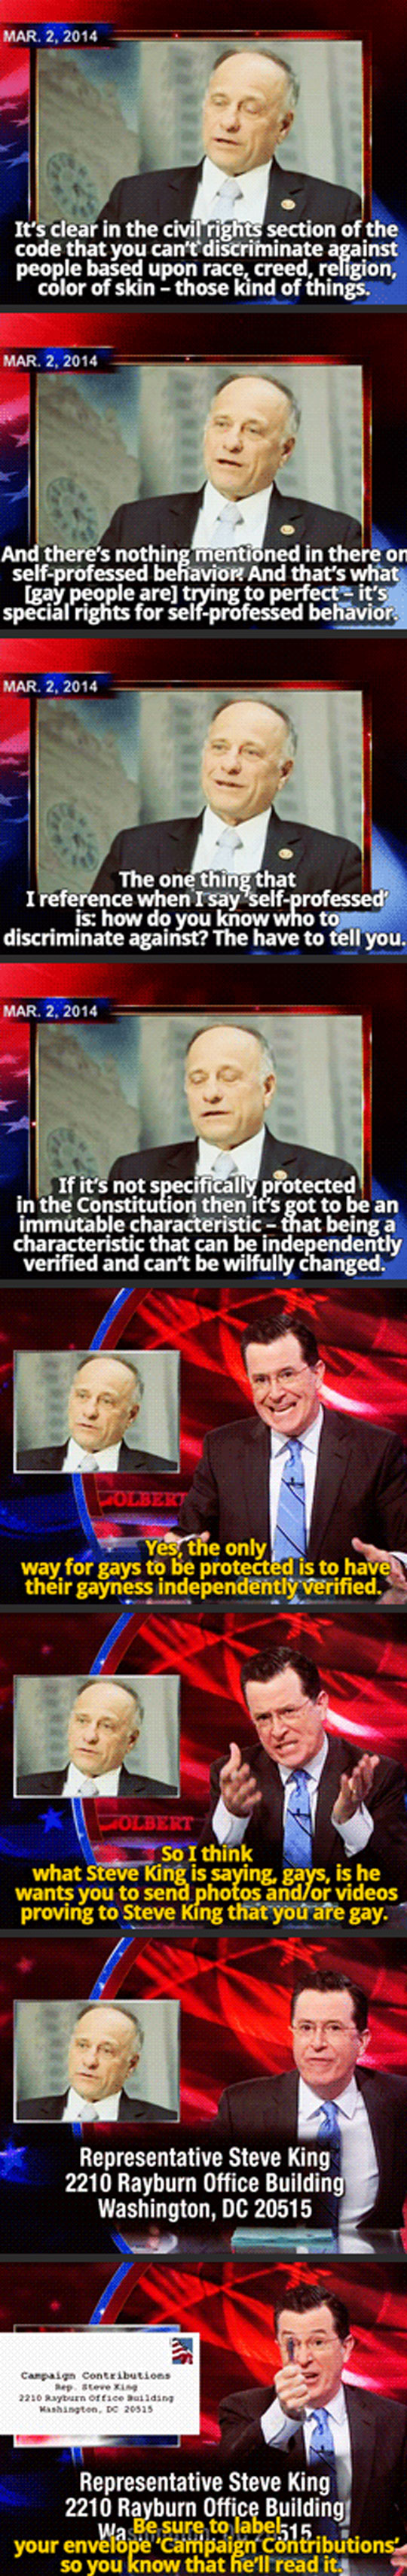 funny-Stephen-Colbert-gay-politic-address